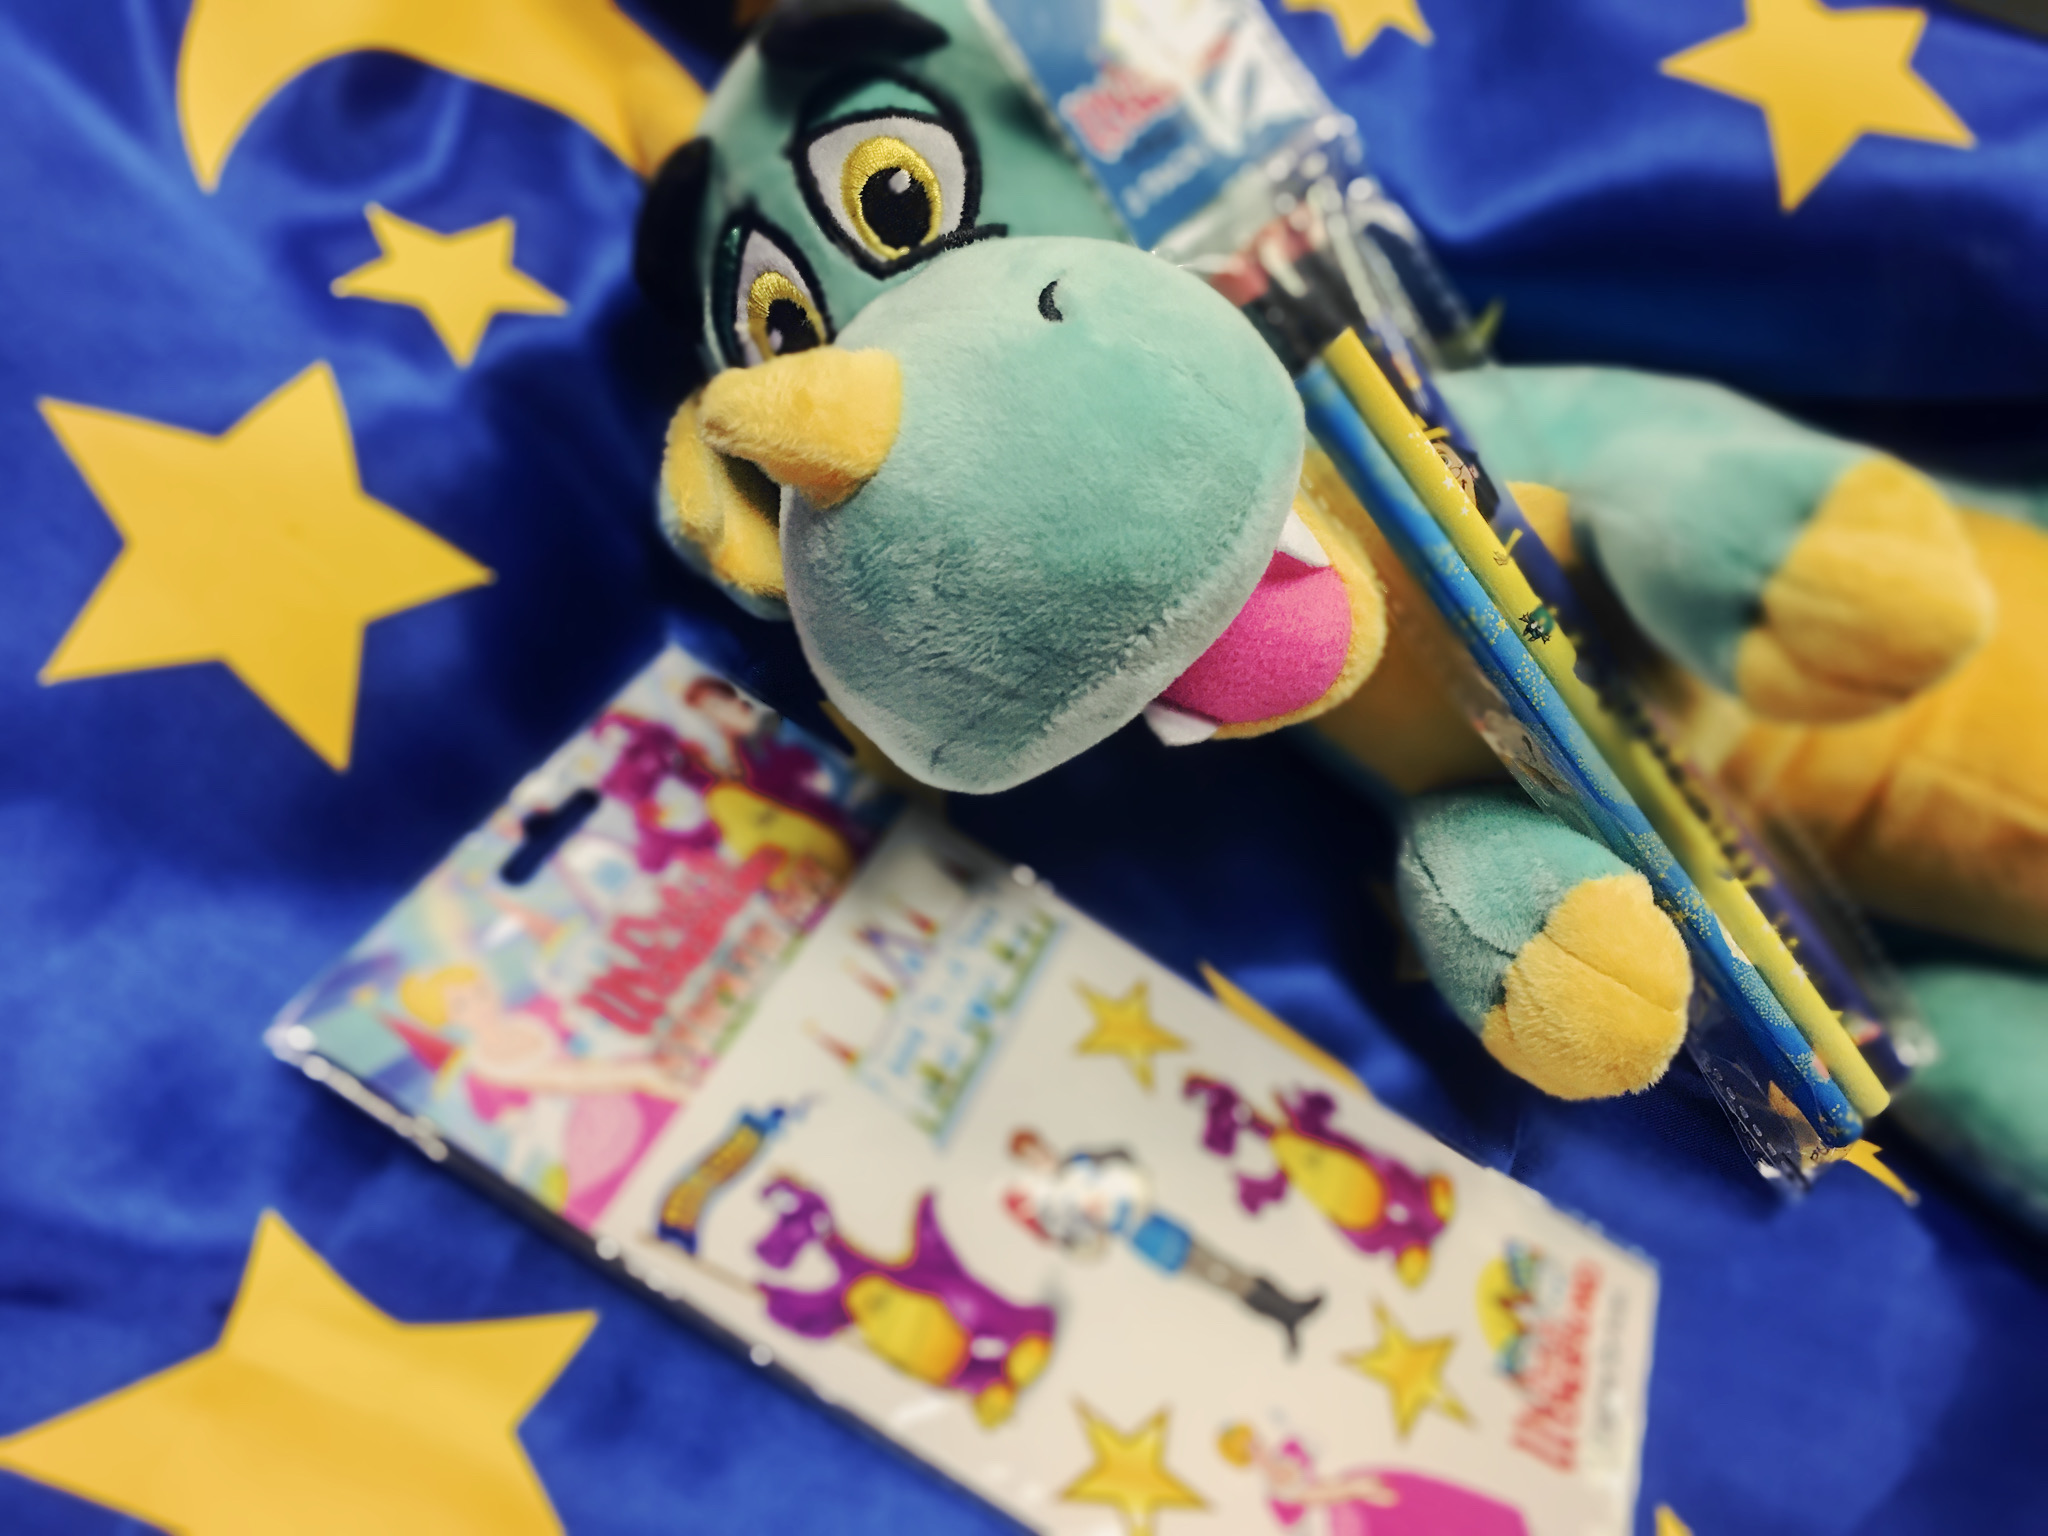 Mayhem the dragon plush toy with pencils, book and cape